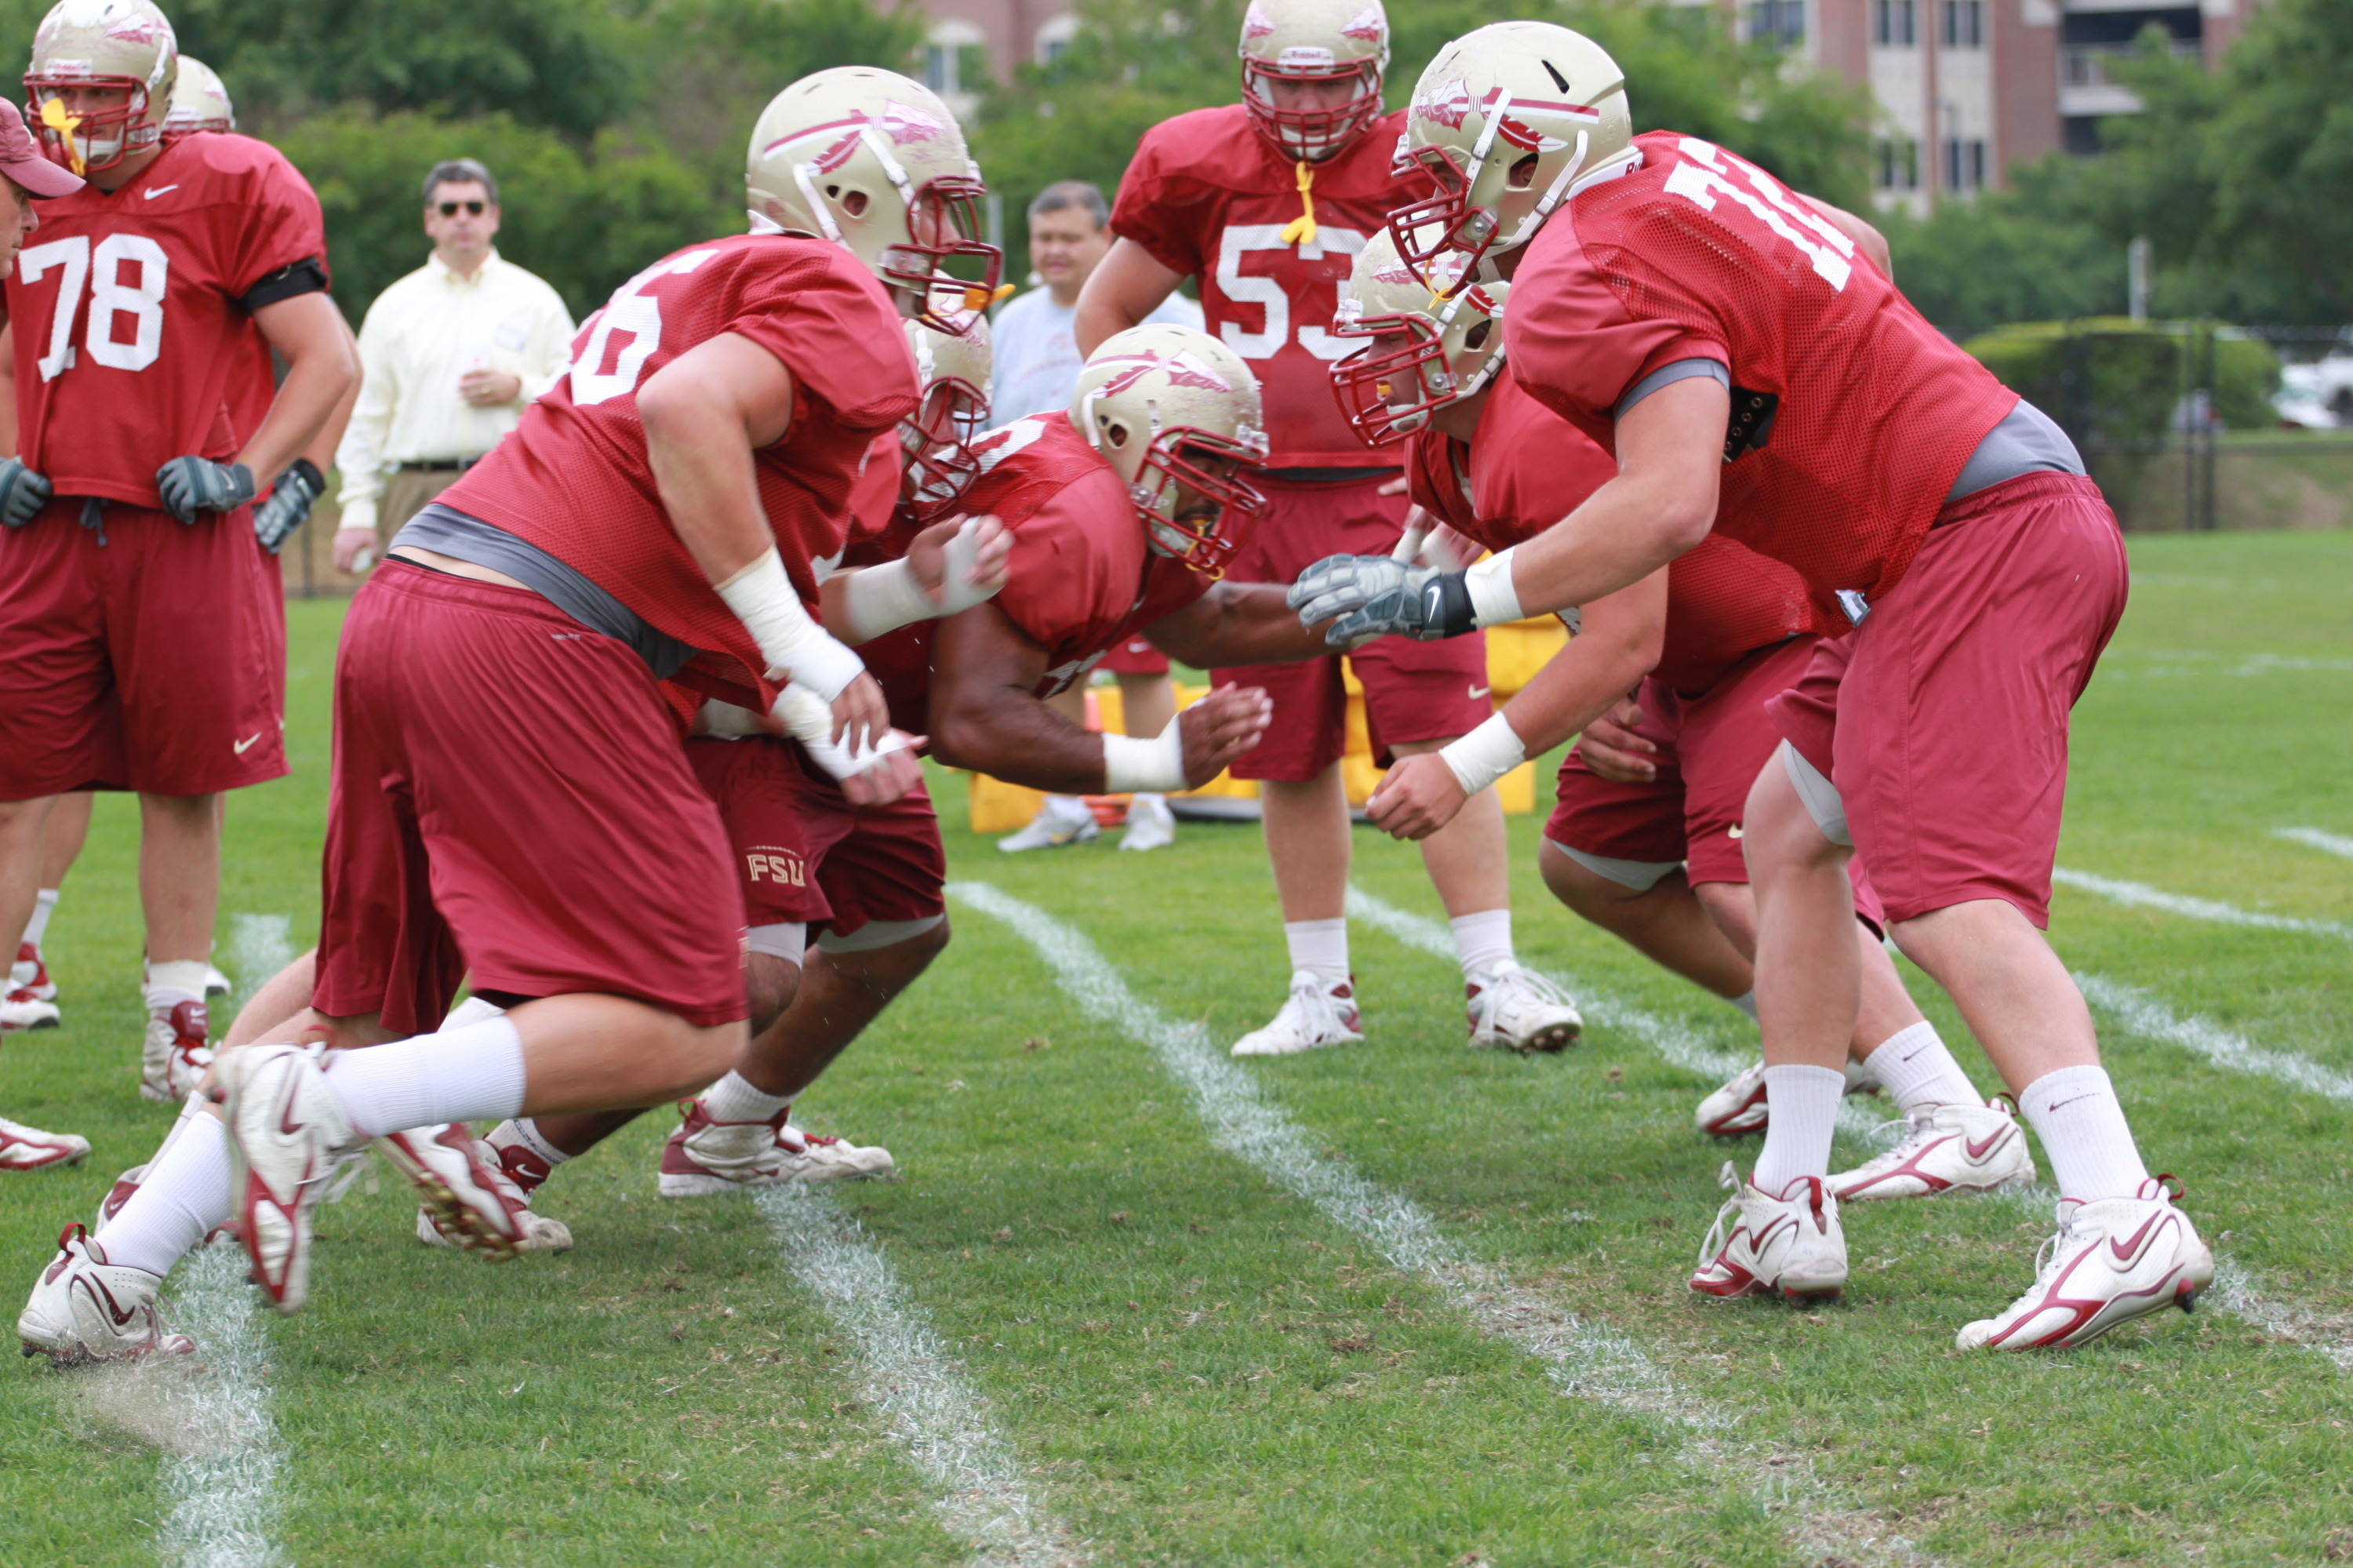 The linemen showing their brute force and mentality.